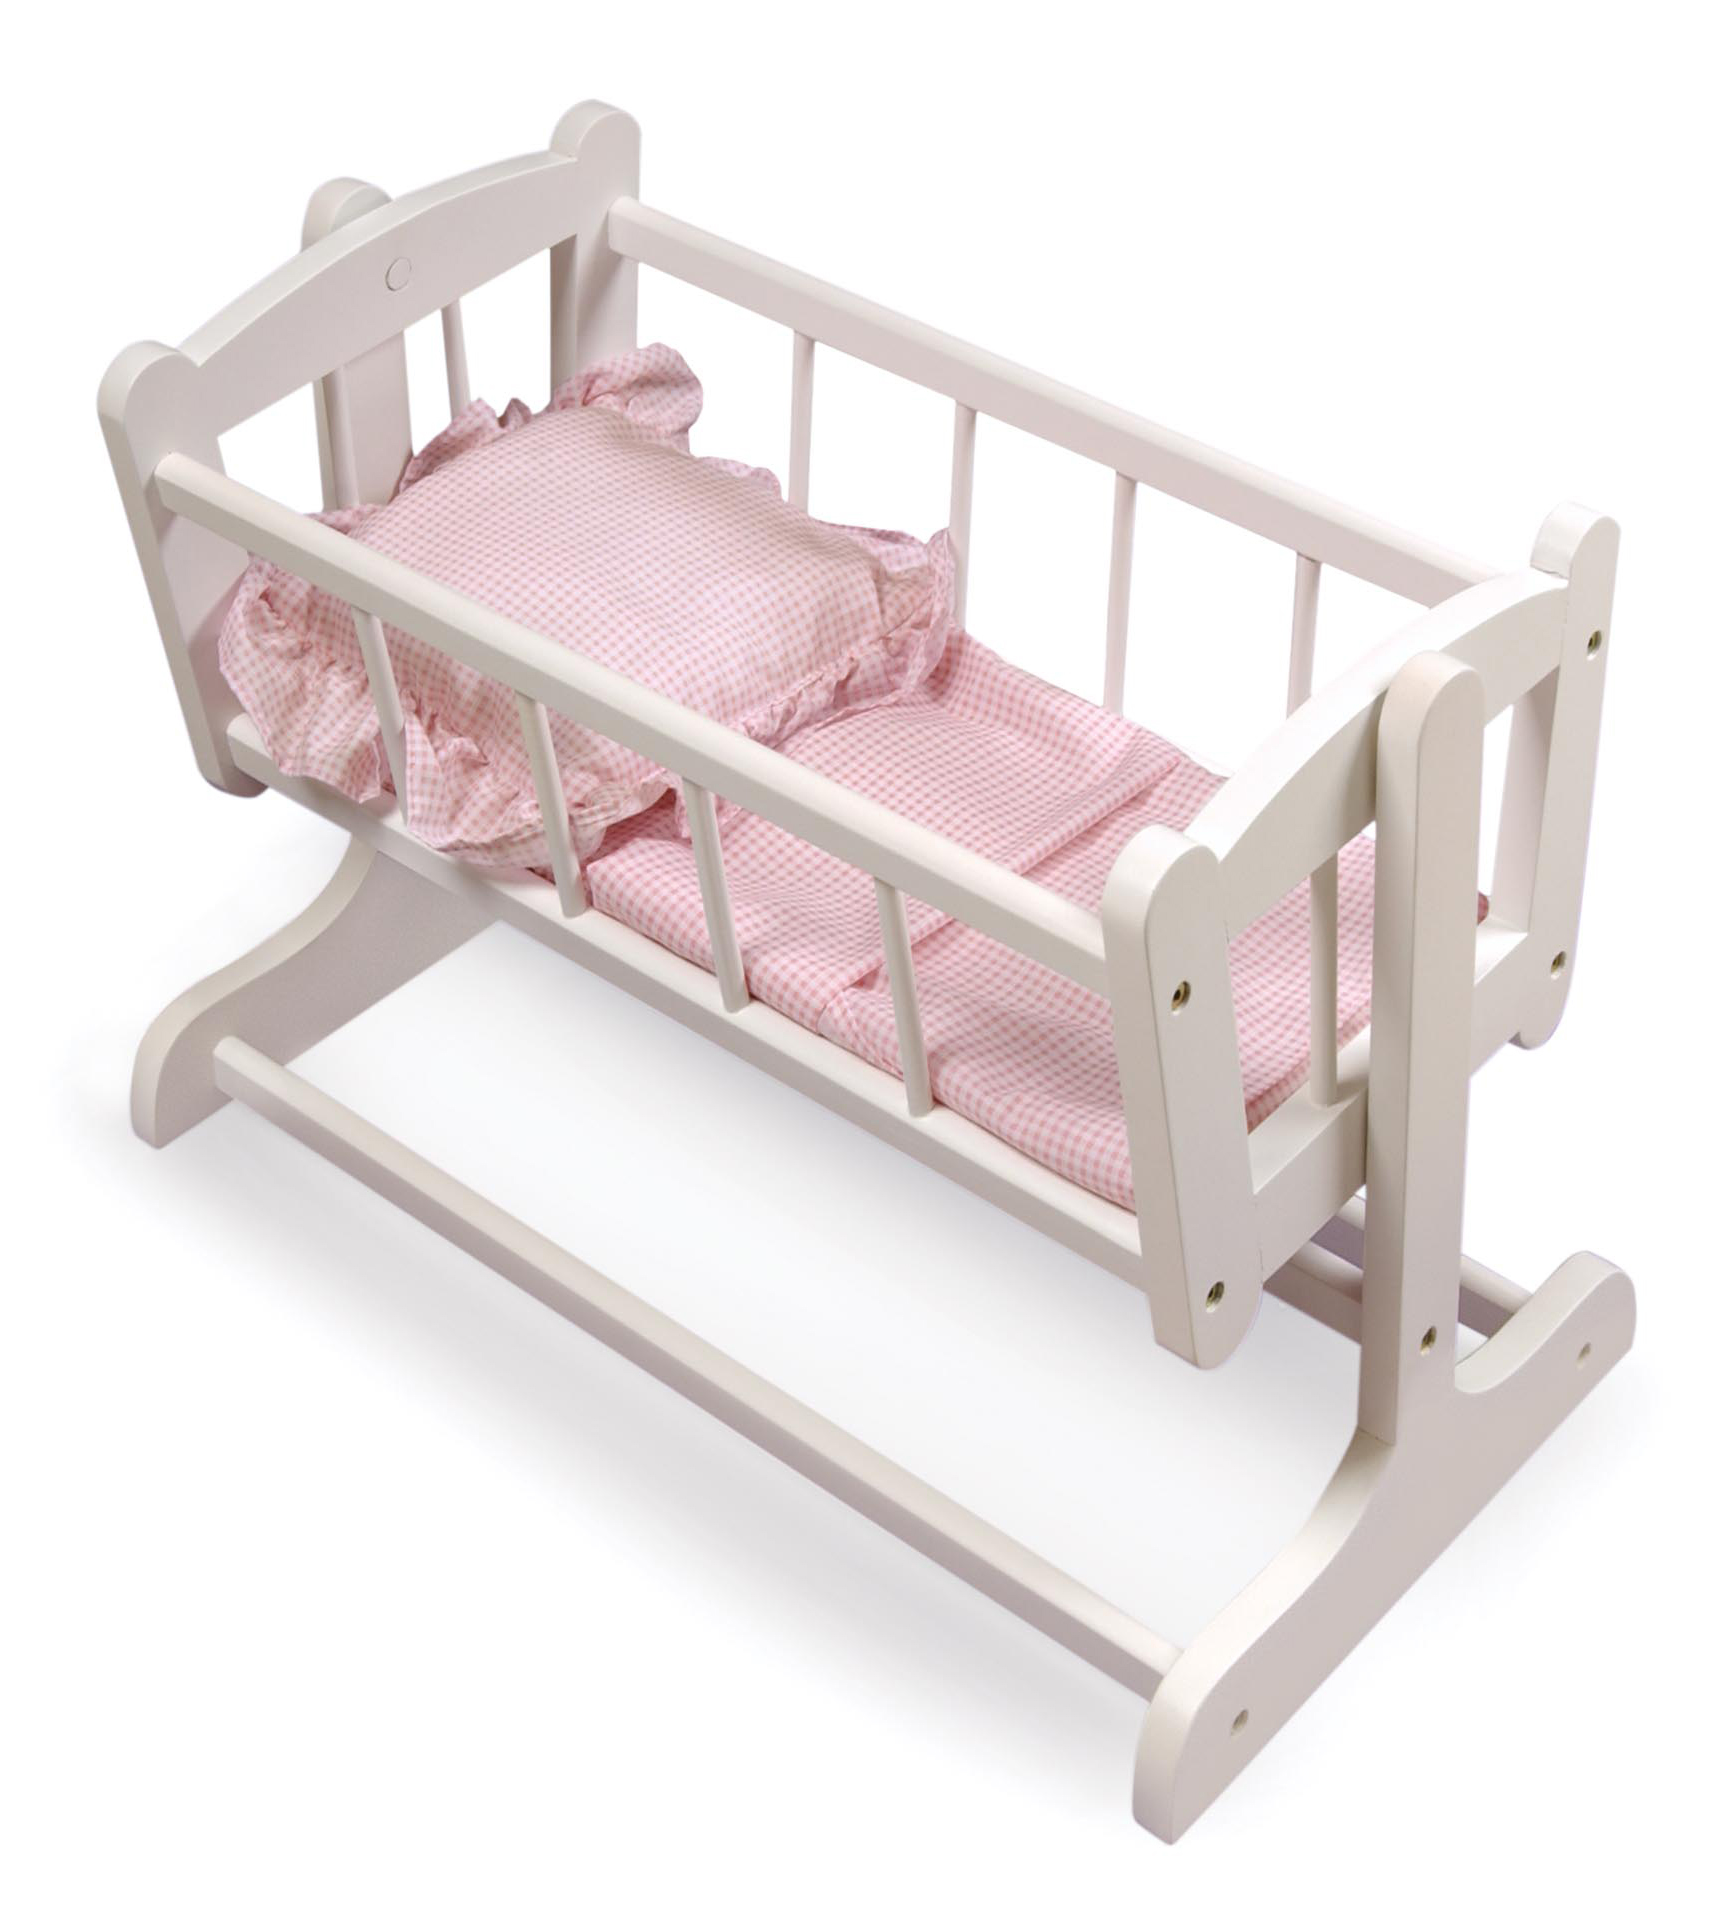 "Badger Basket Heirloom Style Doll Cradle with Bedding - White/Pink - Fits American Girl, My Life As & Most 18"" Dolls"